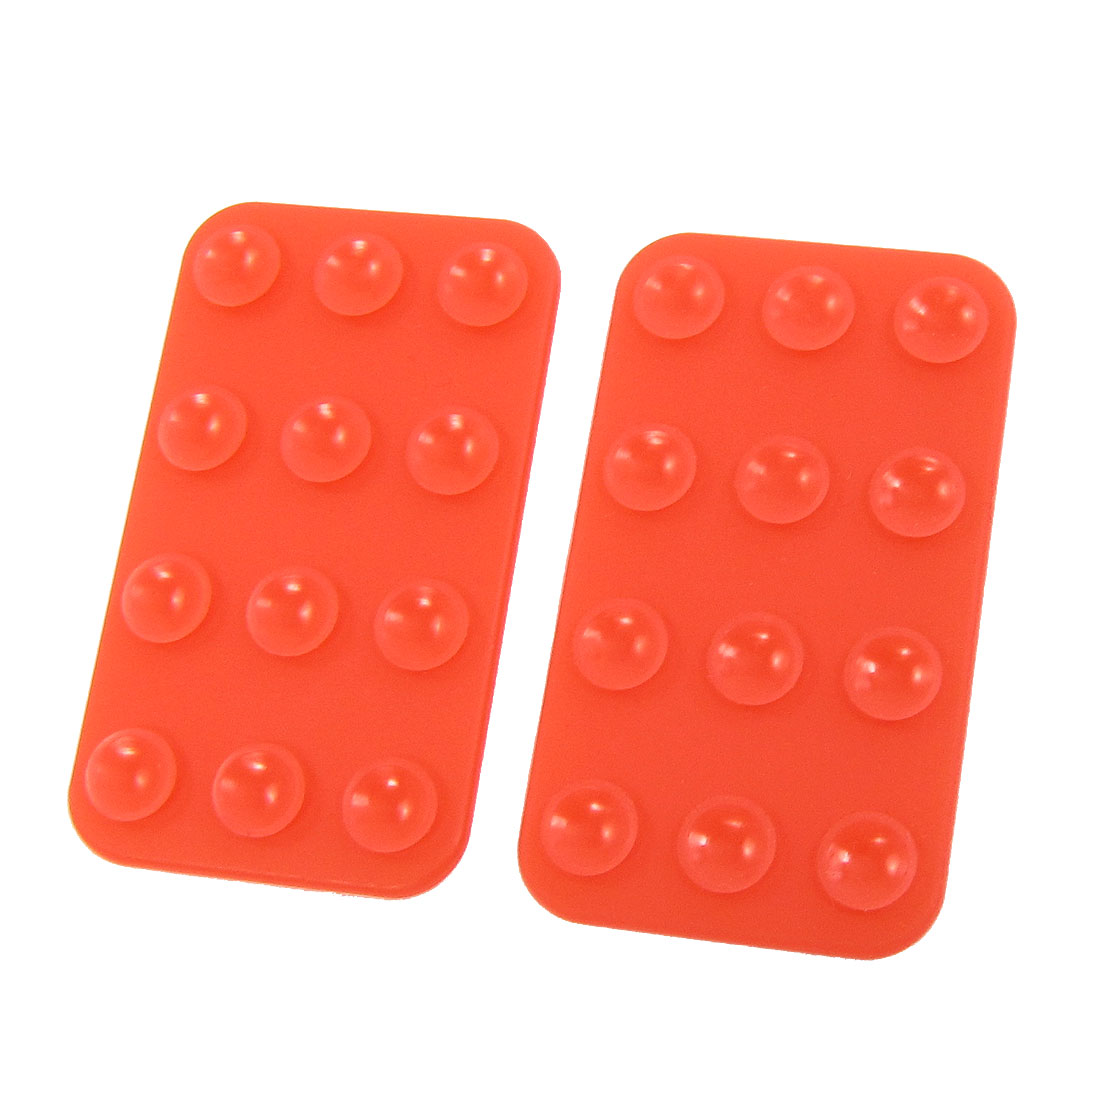 2pcs 74mmx42mm Mobile Silicone Suction Cup Sucker Holder Red for Tablet PC